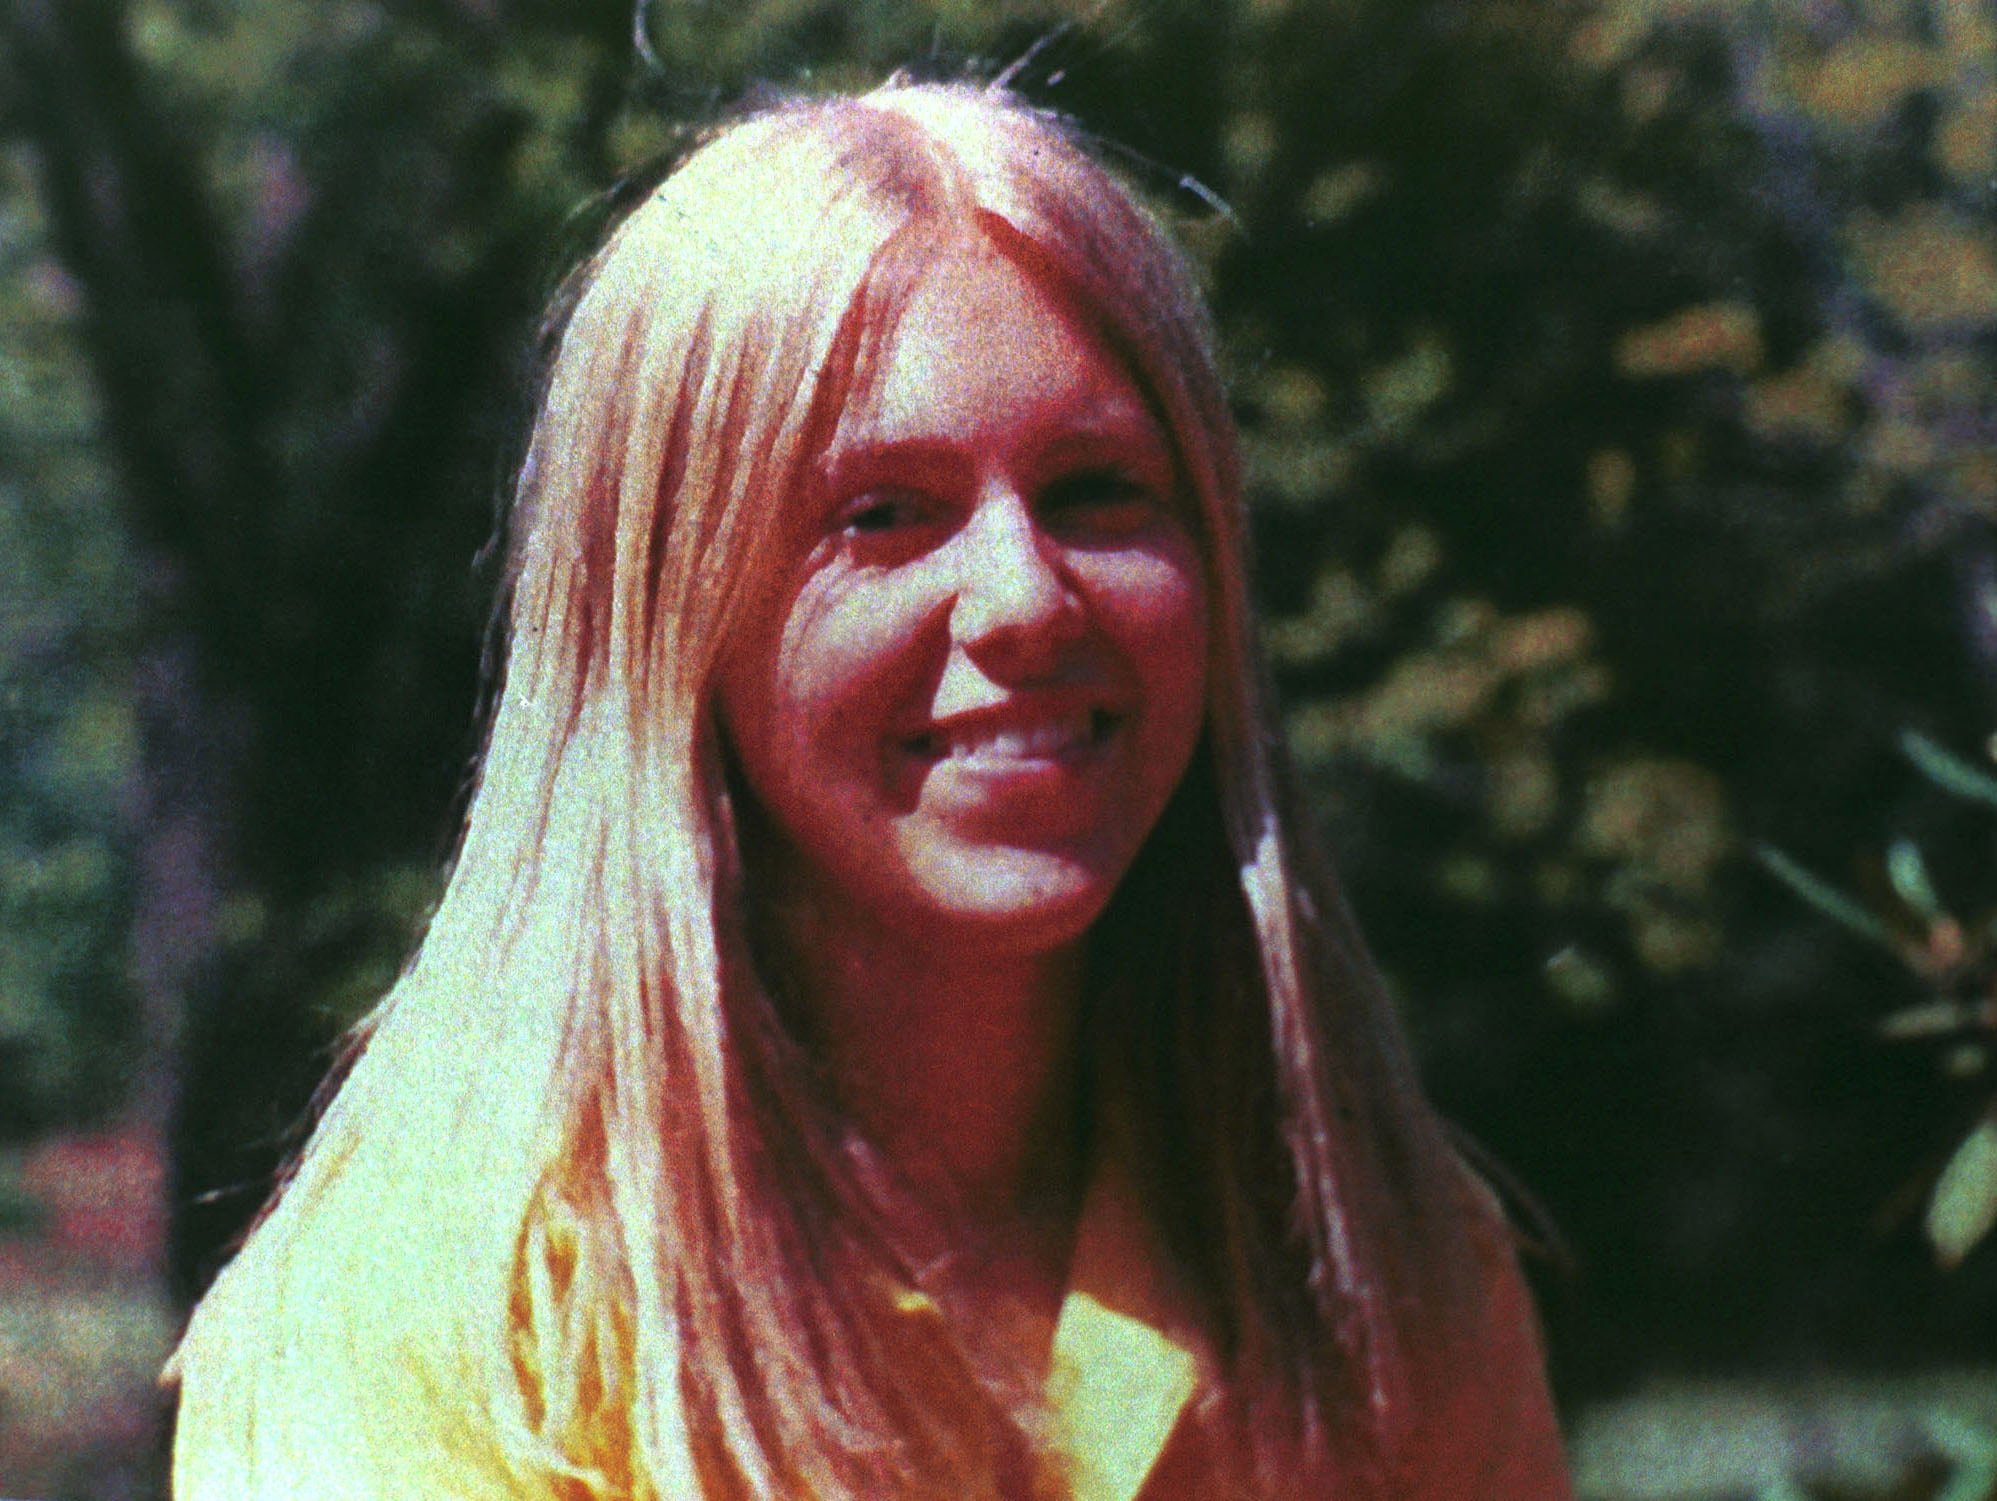 File photo of Martha Moxley when she was 14. Moxley was killed when she was 15 years old in the affluent town of Greenwich, CT where her murder has never been solved. On January 19, 2000, prosecutors called for the arrest of Michael Skakel, a nephew of Ethel Kennedy and Robert Kennedy, in connection with Moxley's murder, breaking the long unsolved murder mystery. --- Photo by Erik Freeland/Corbis SABA | Location: Chatam, New Jersey, United States.  (Photo by Erik Freeland/Corbis via Getty Images)